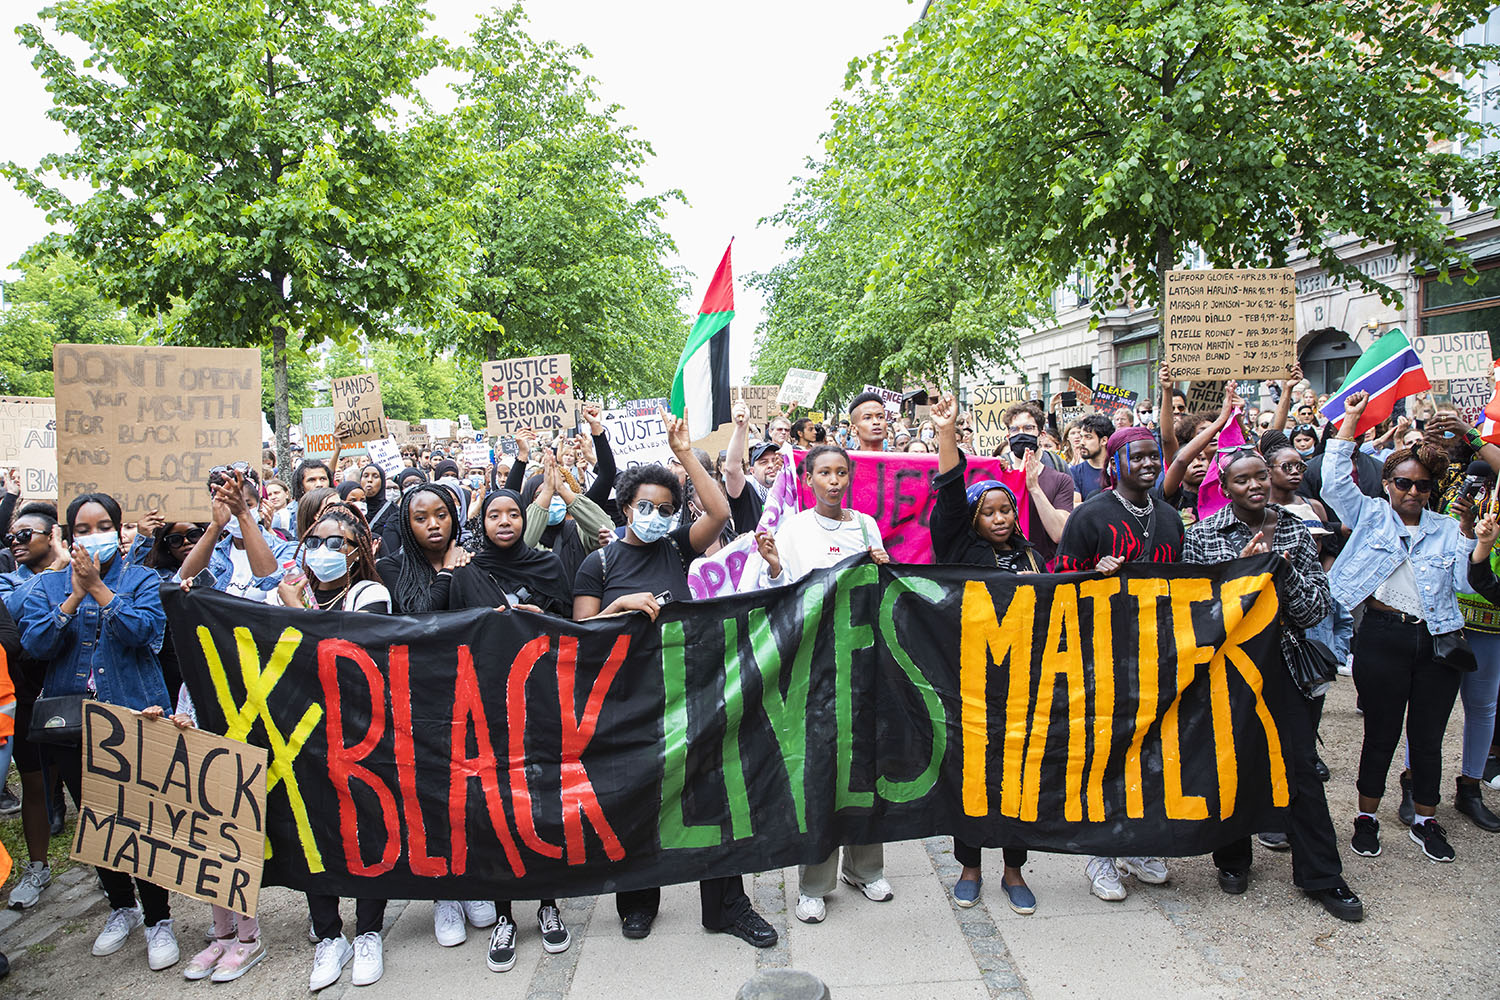 BlackLivesMatterDK_DEMO_070620_HelenaLundquist_mindre_1